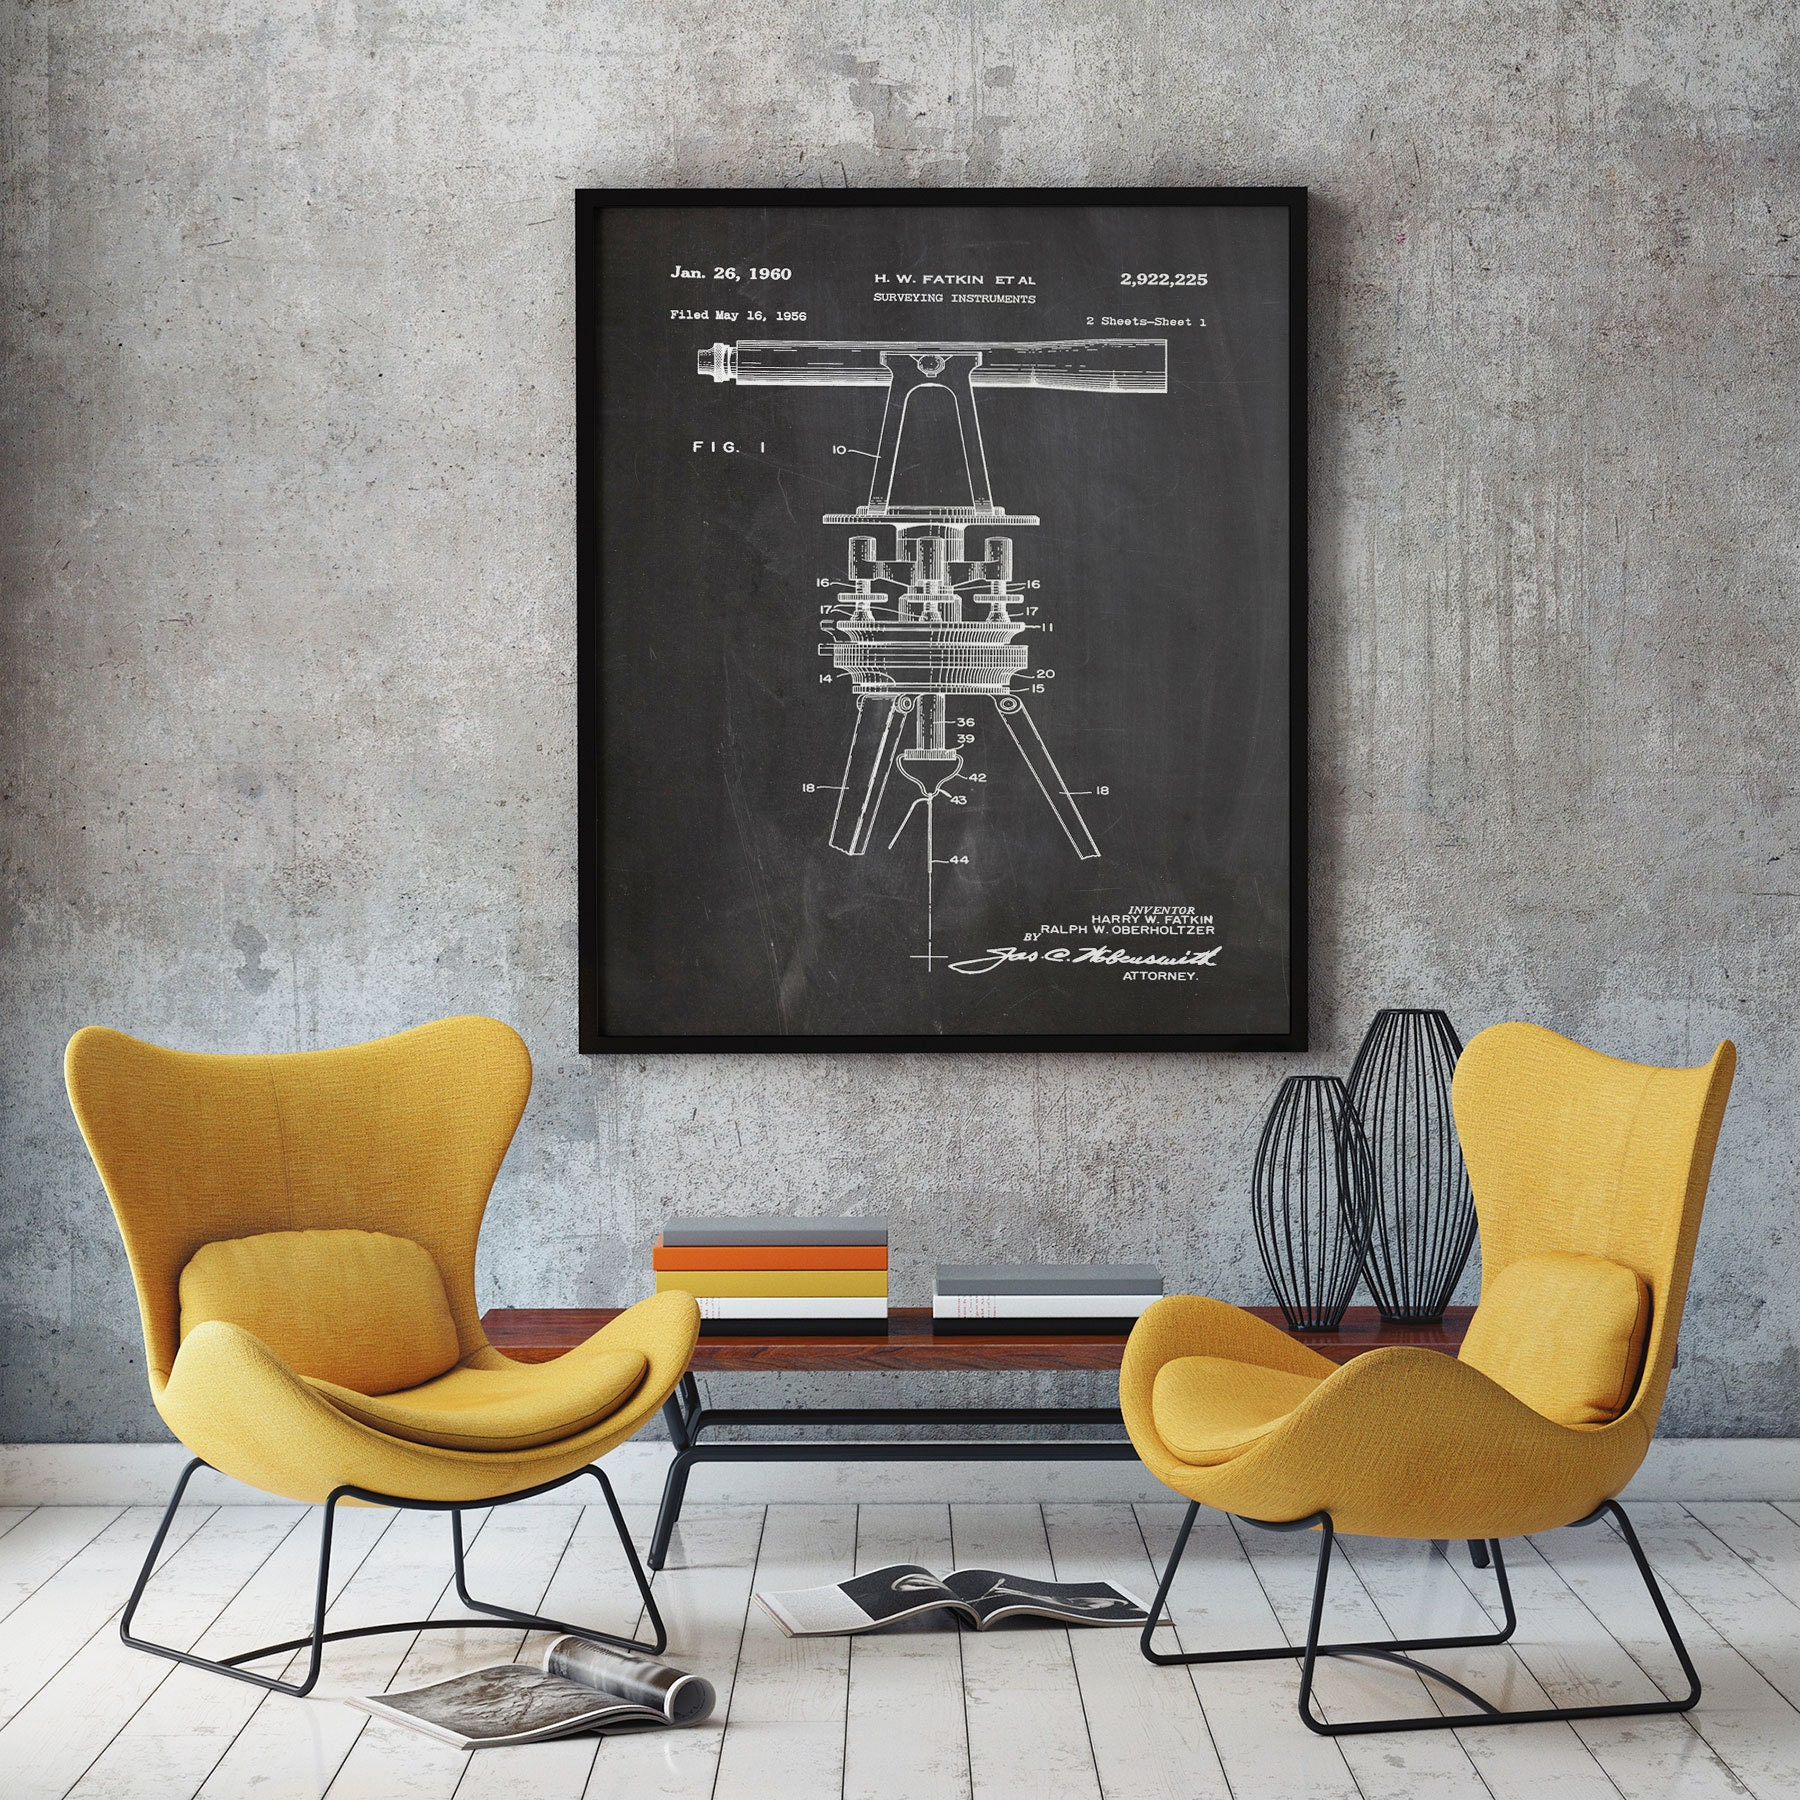 Surveyor poster building poster blueprint wall art surveying surveyor poster building poster blueprint wall art surveying instrument patent print surveying gift large poster 50x70 poster wb231 malvernweather Image collections